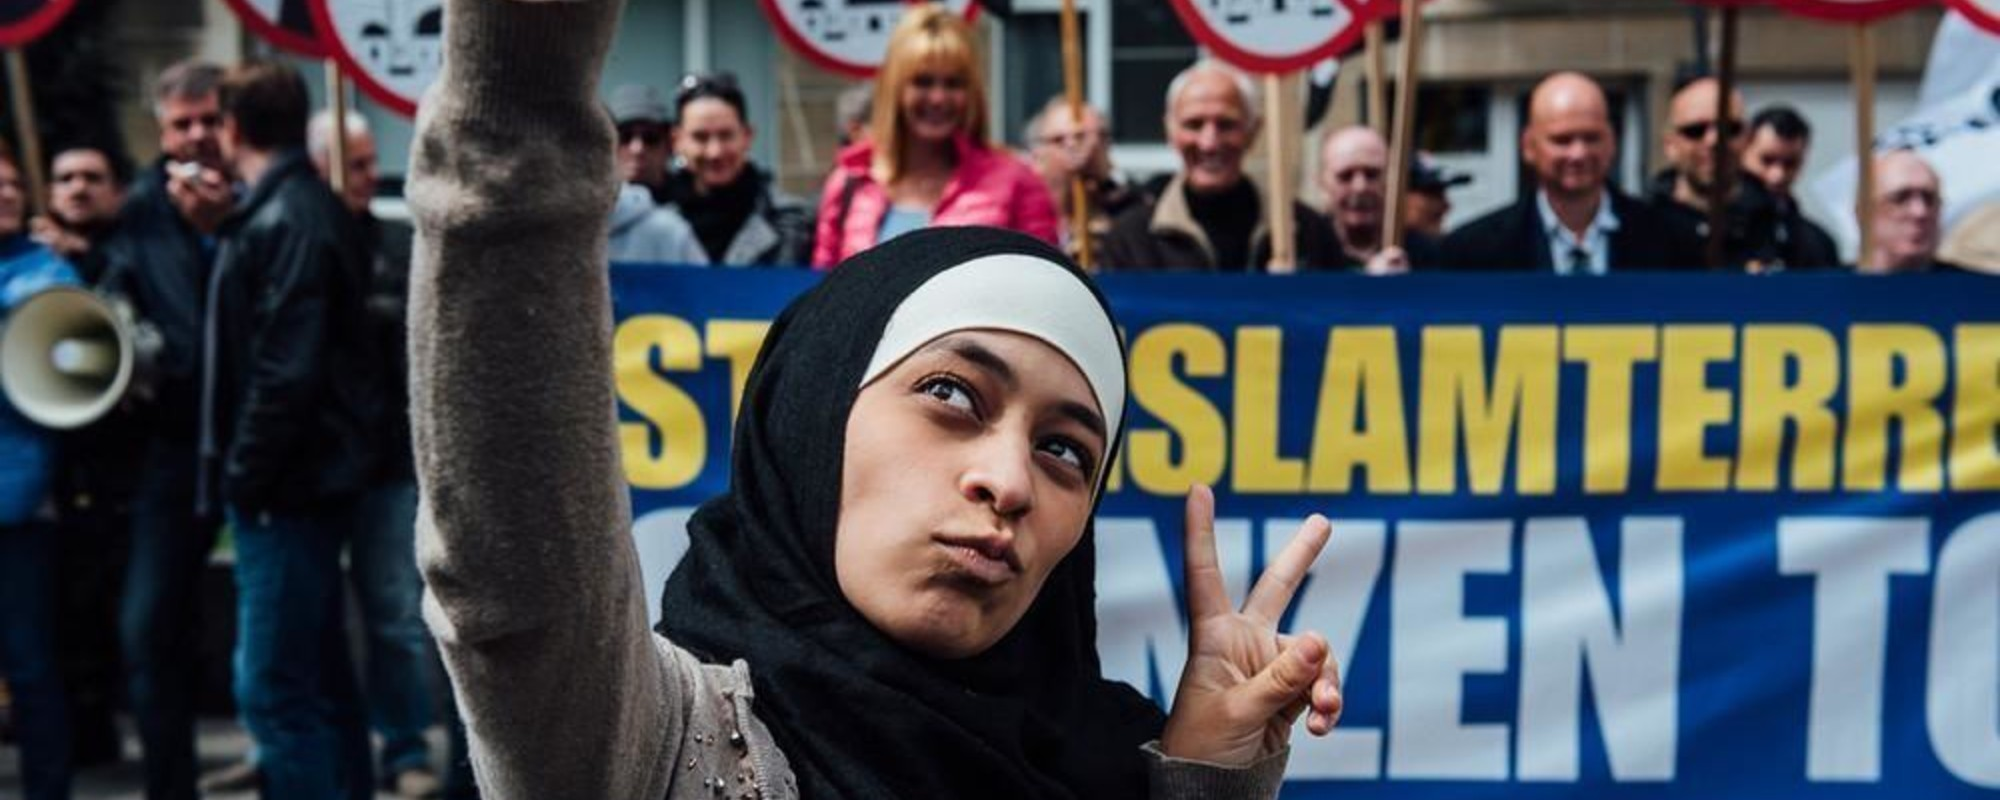 How To Neutralise Anti-Islam Protesters with a Selfie